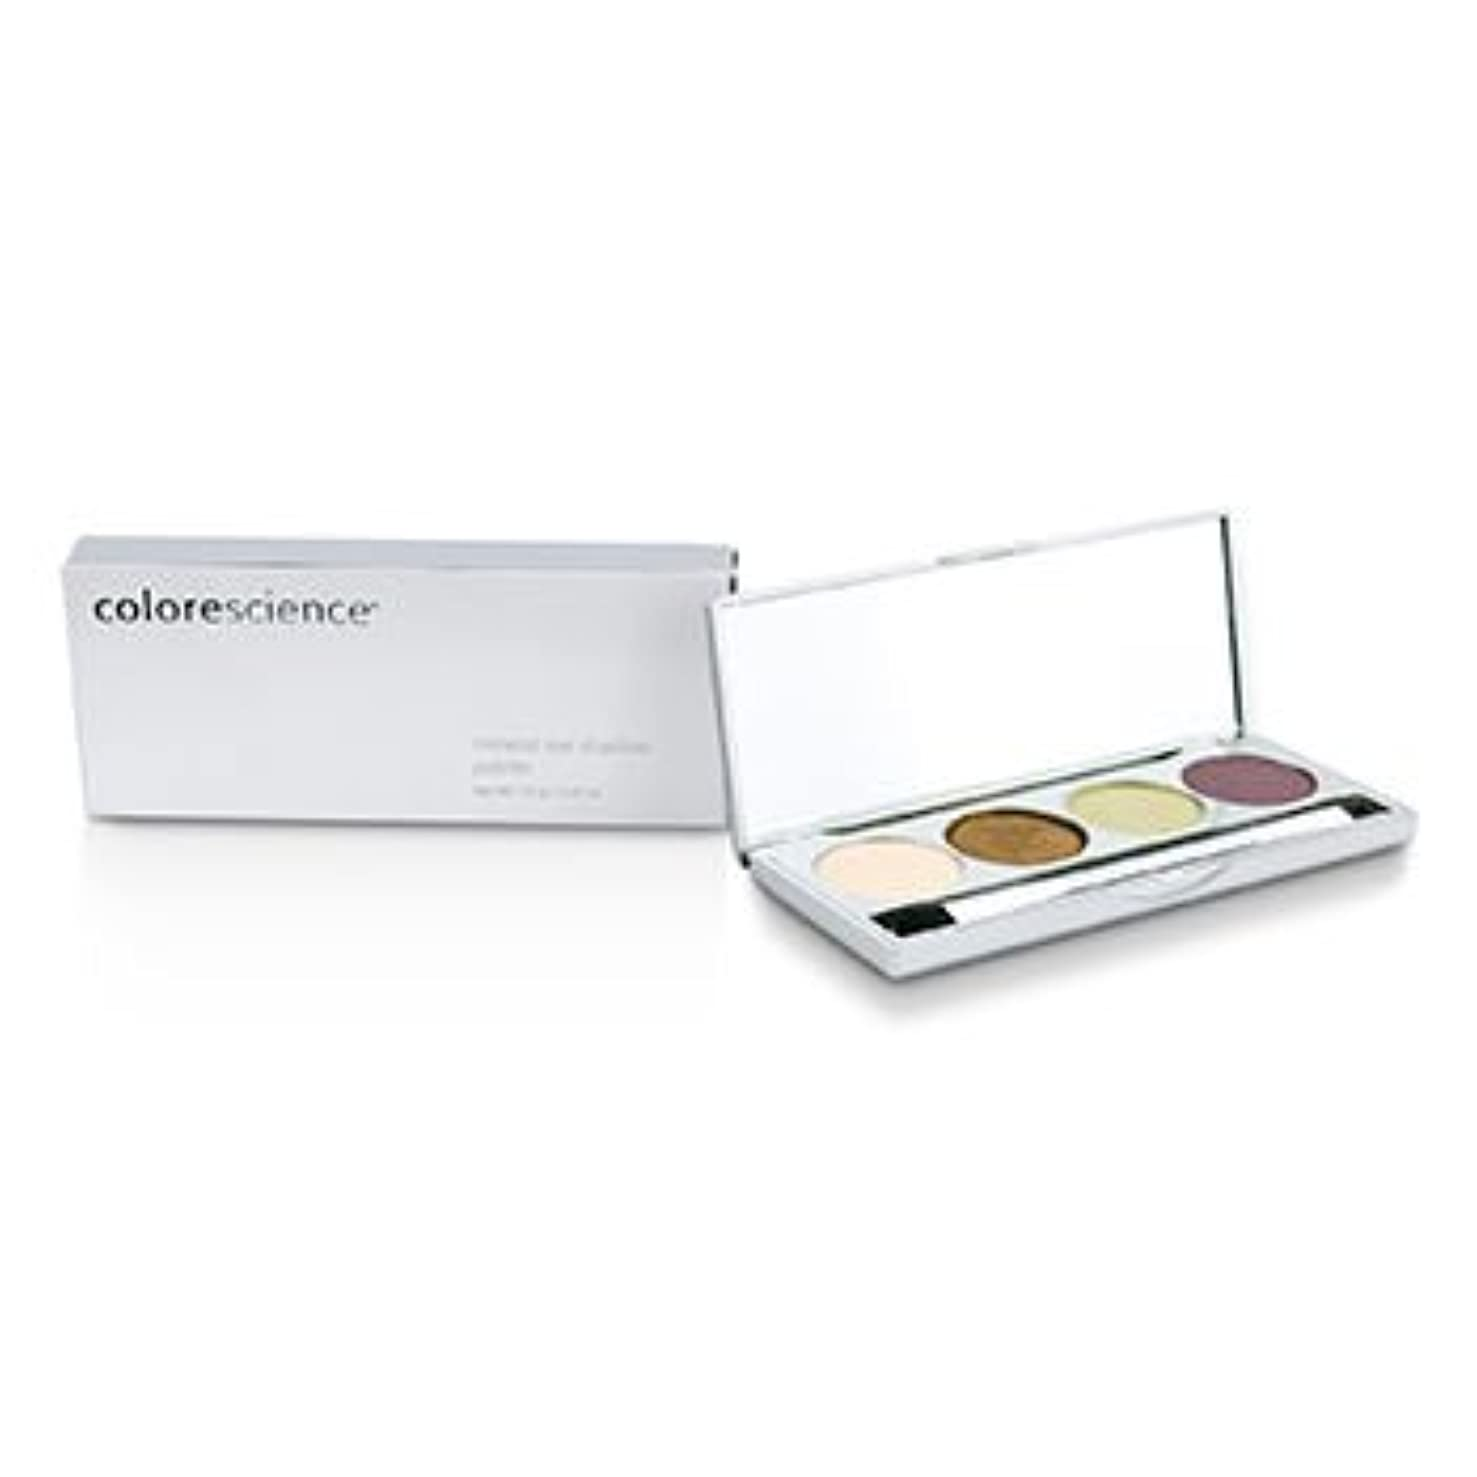 生じる仮定するヒント[Colorescience] Mineral Eye Shadow Palette - Enchanted Earth 7.2g/0.25oz